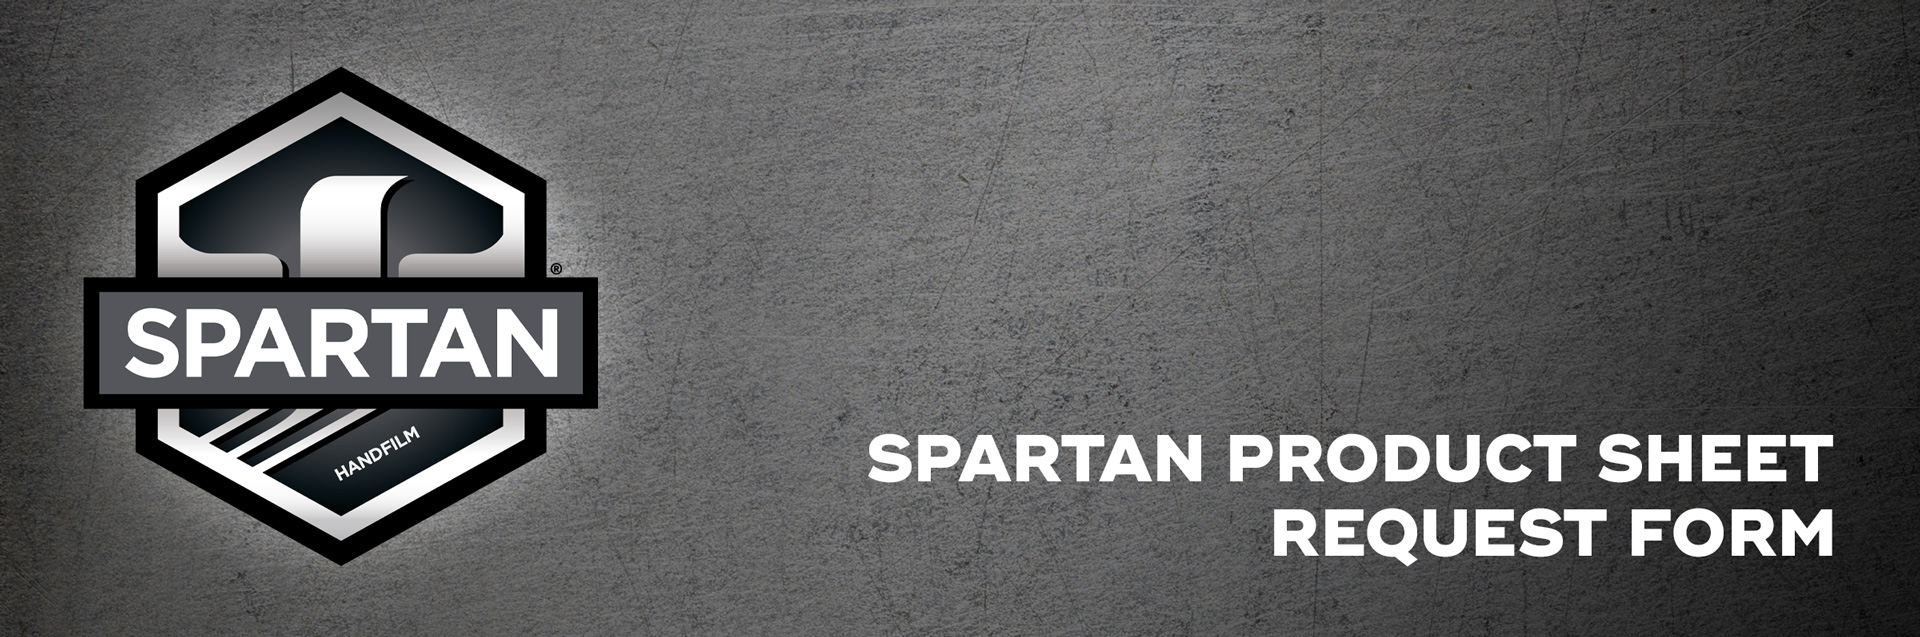 Spartan-Product-Sheet-Request-Form-Hero